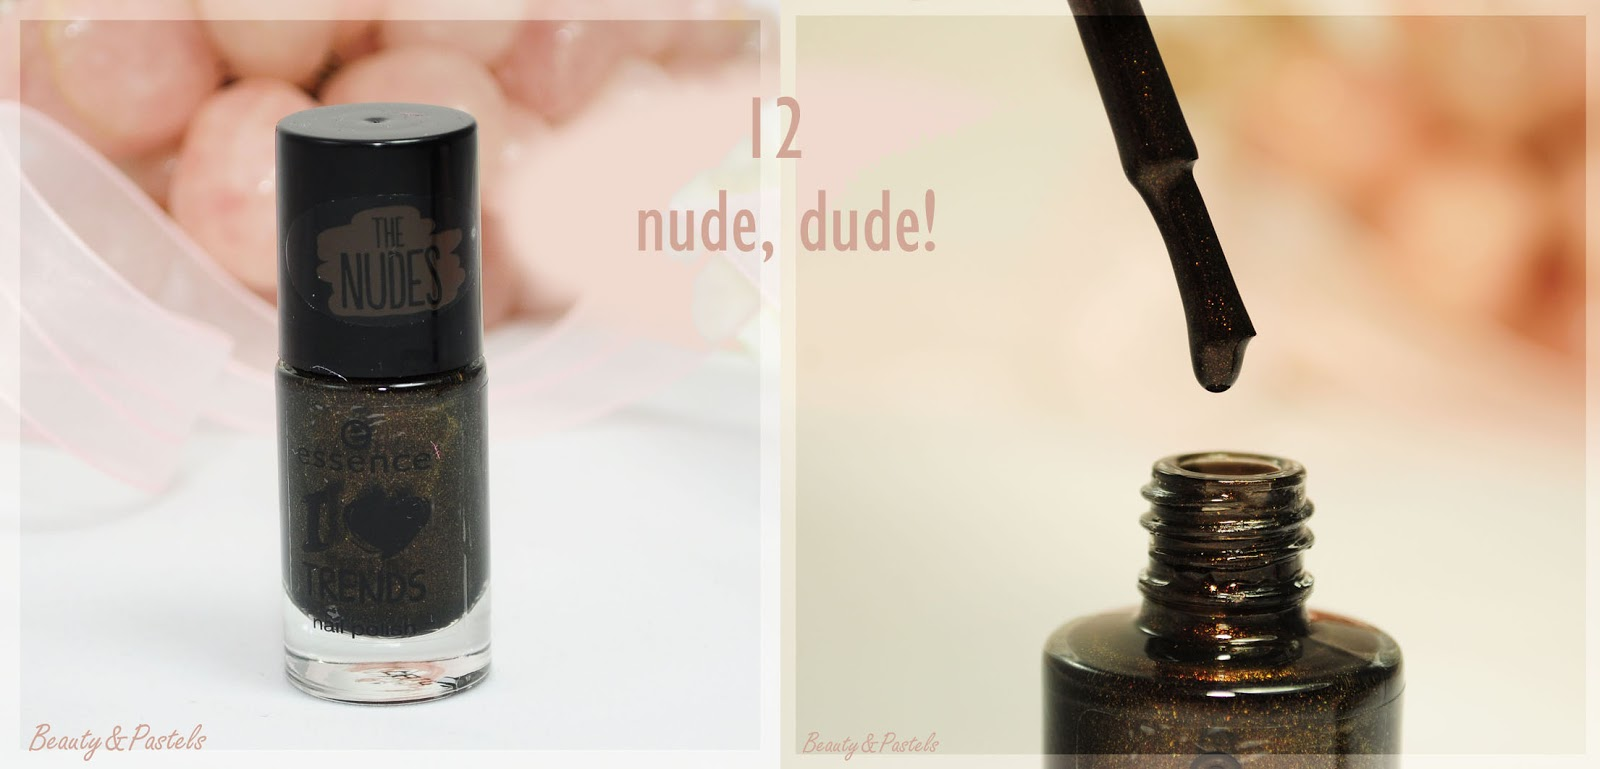 essence-it's-nude-dude!